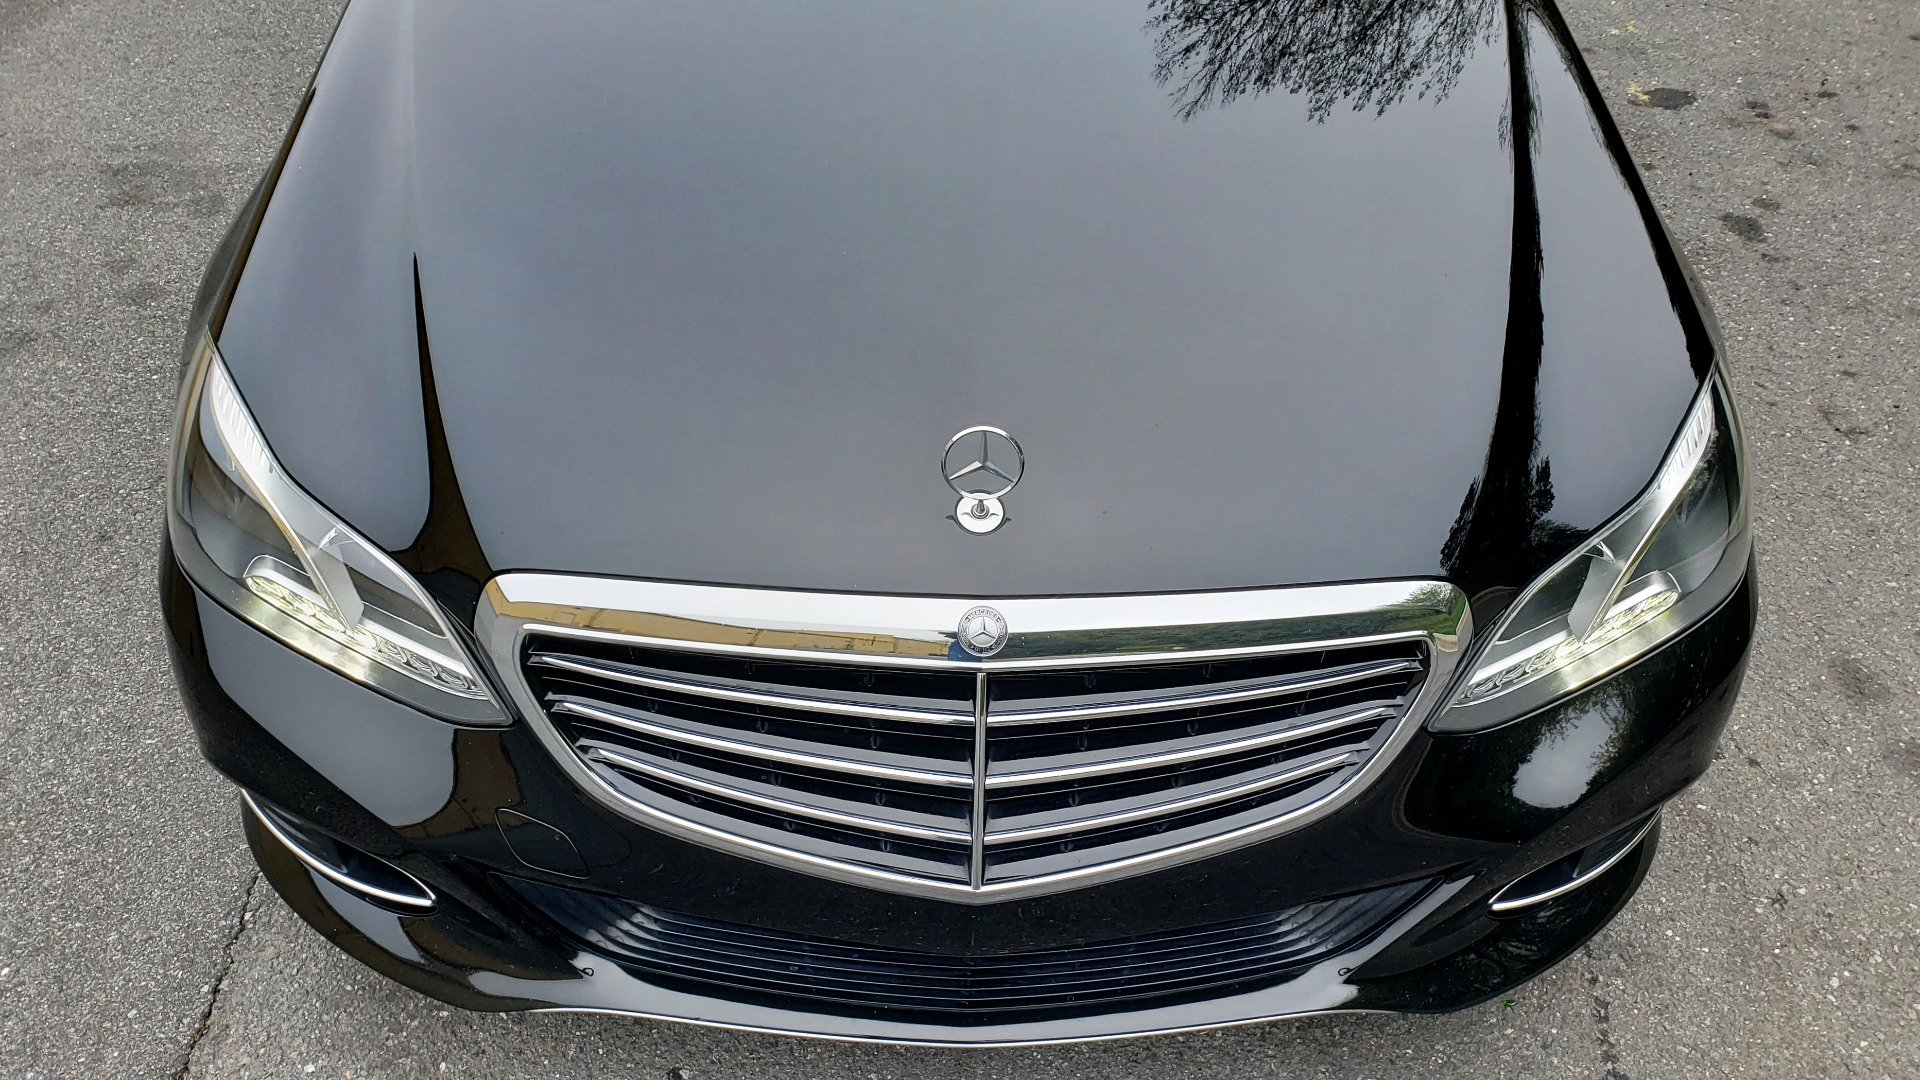 Used 2014 Mercedes-Benz E-Class E 350 4MATIC PREMIUM / NAV / SUNROOF / REARVIEW / 3-ROW for sale Sold at Formula Imports in Charlotte NC 28227 13